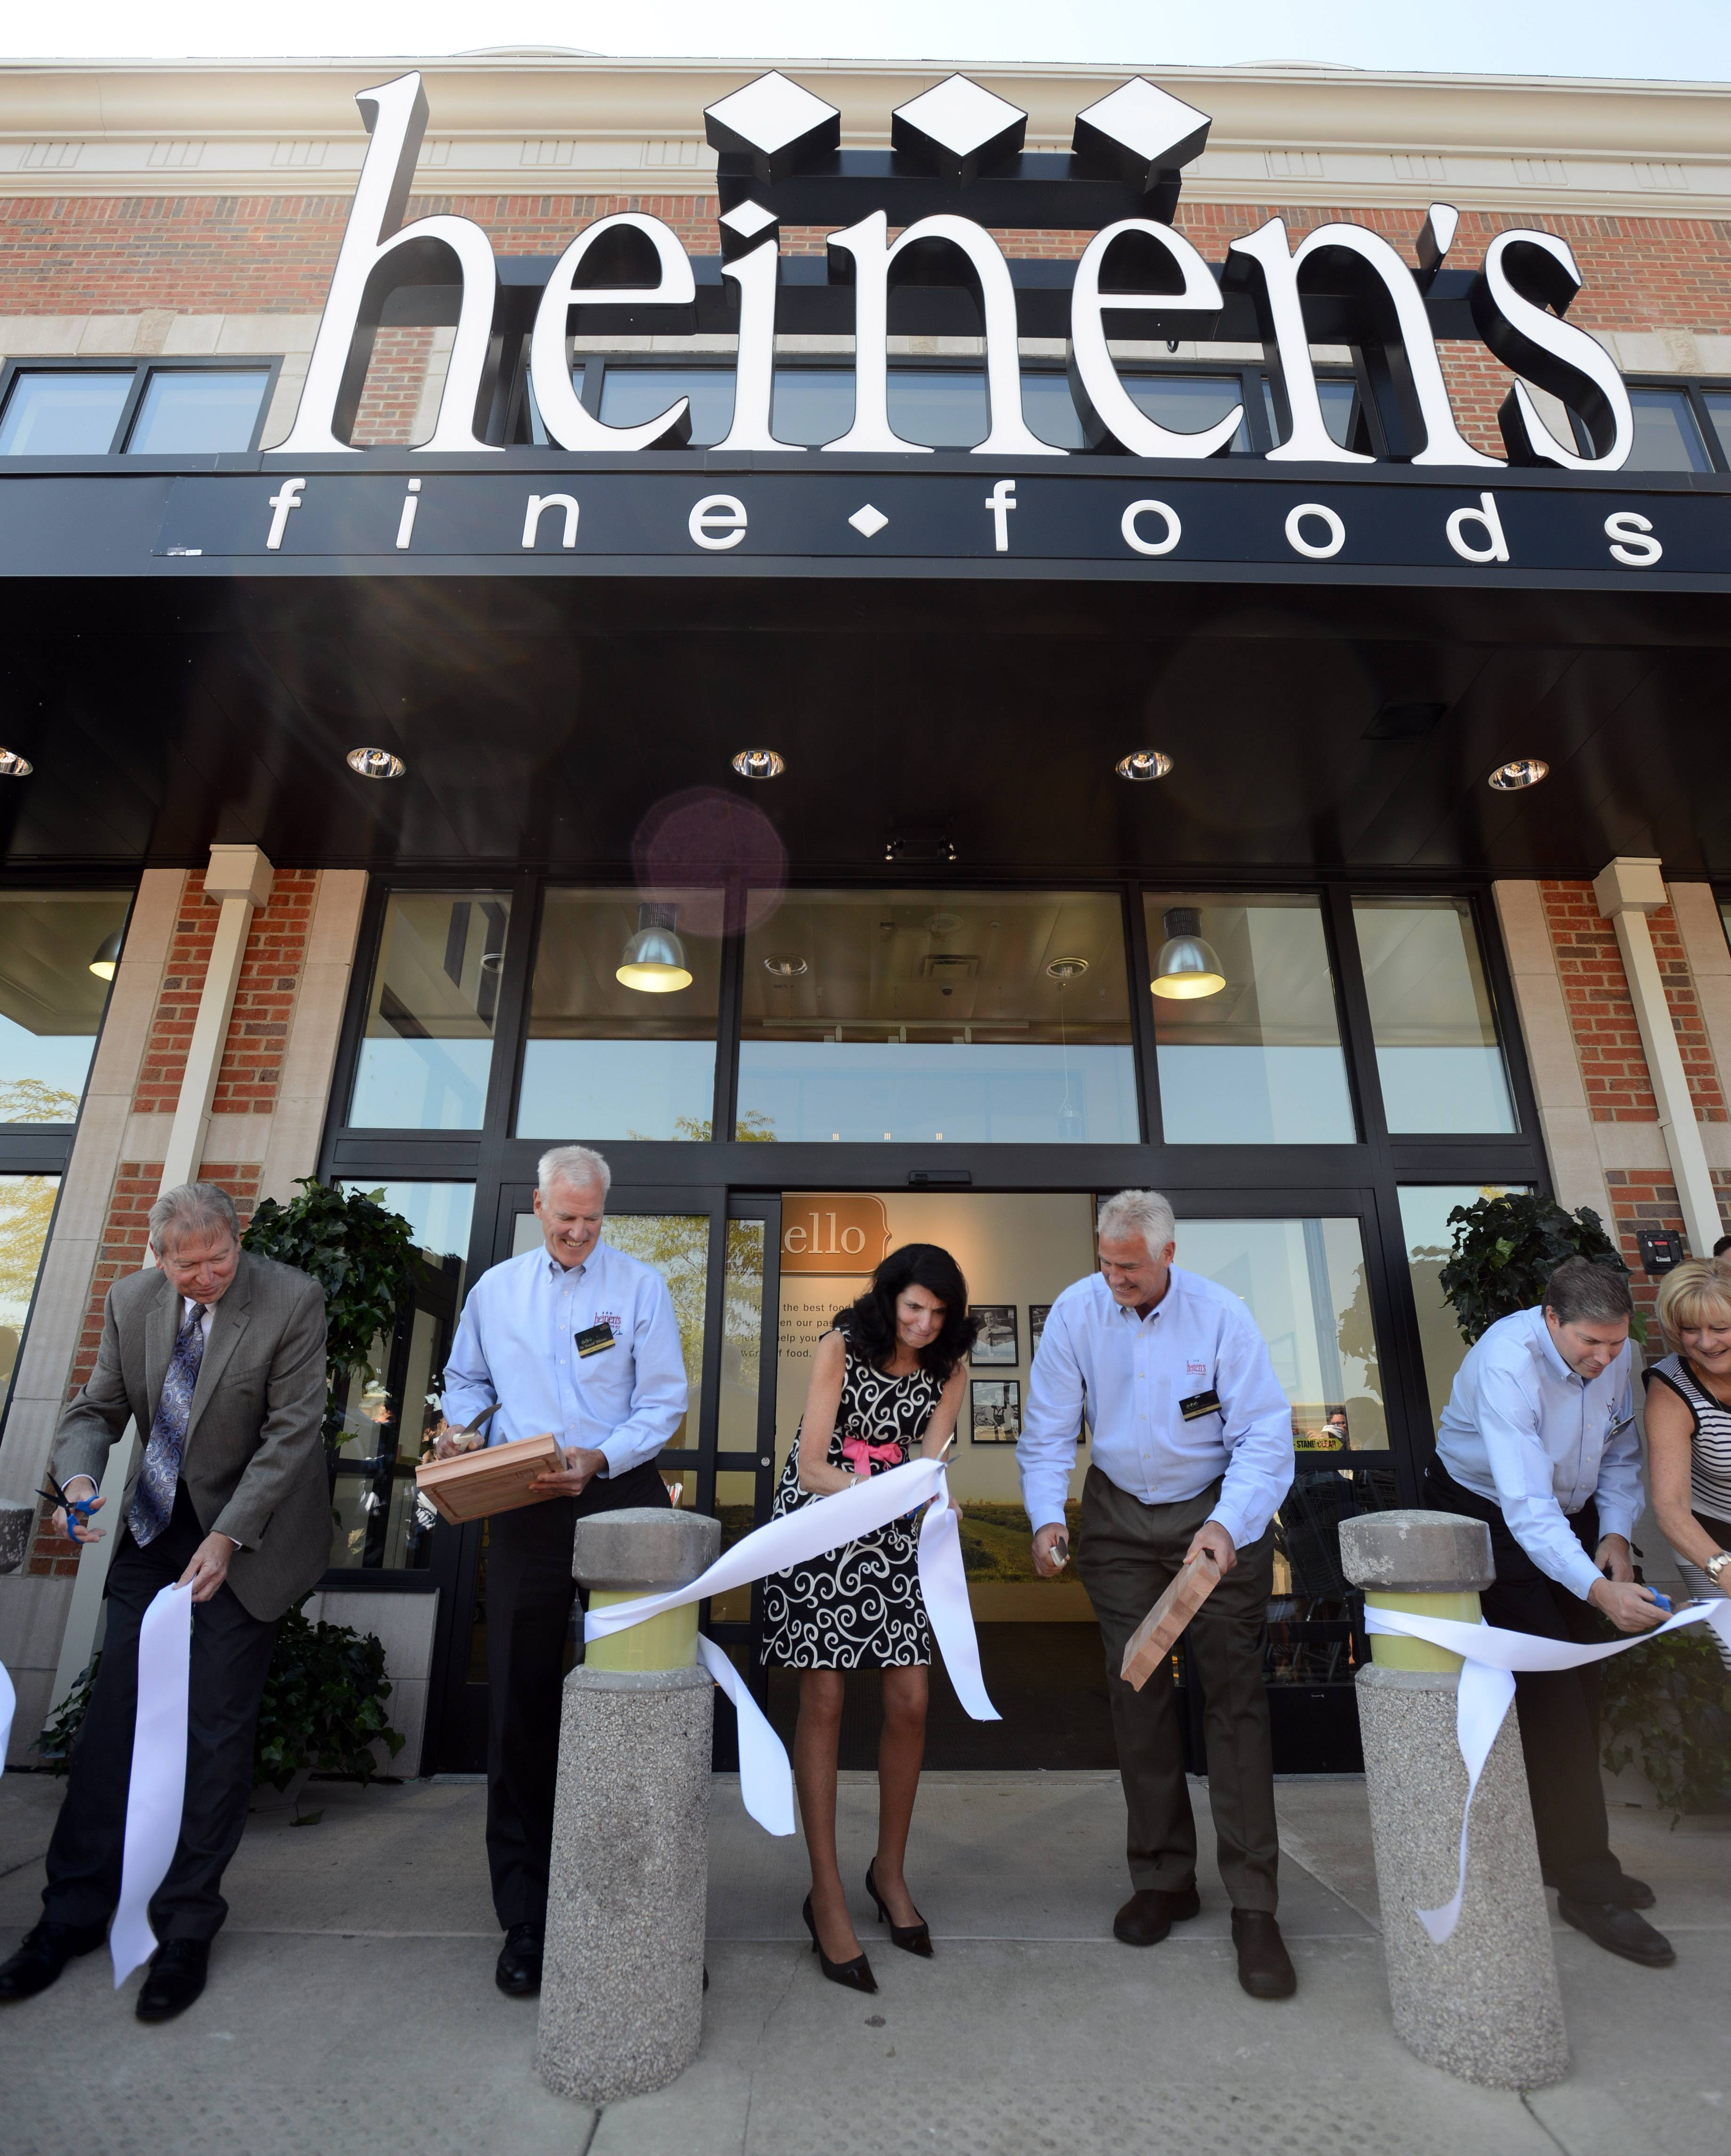 Brothers Jeff and Tom Heinen and Barrington Mayor Karen Darch cut the ribbon at the grand opening of Heinen's Fine Foods in Barrington in 2012.